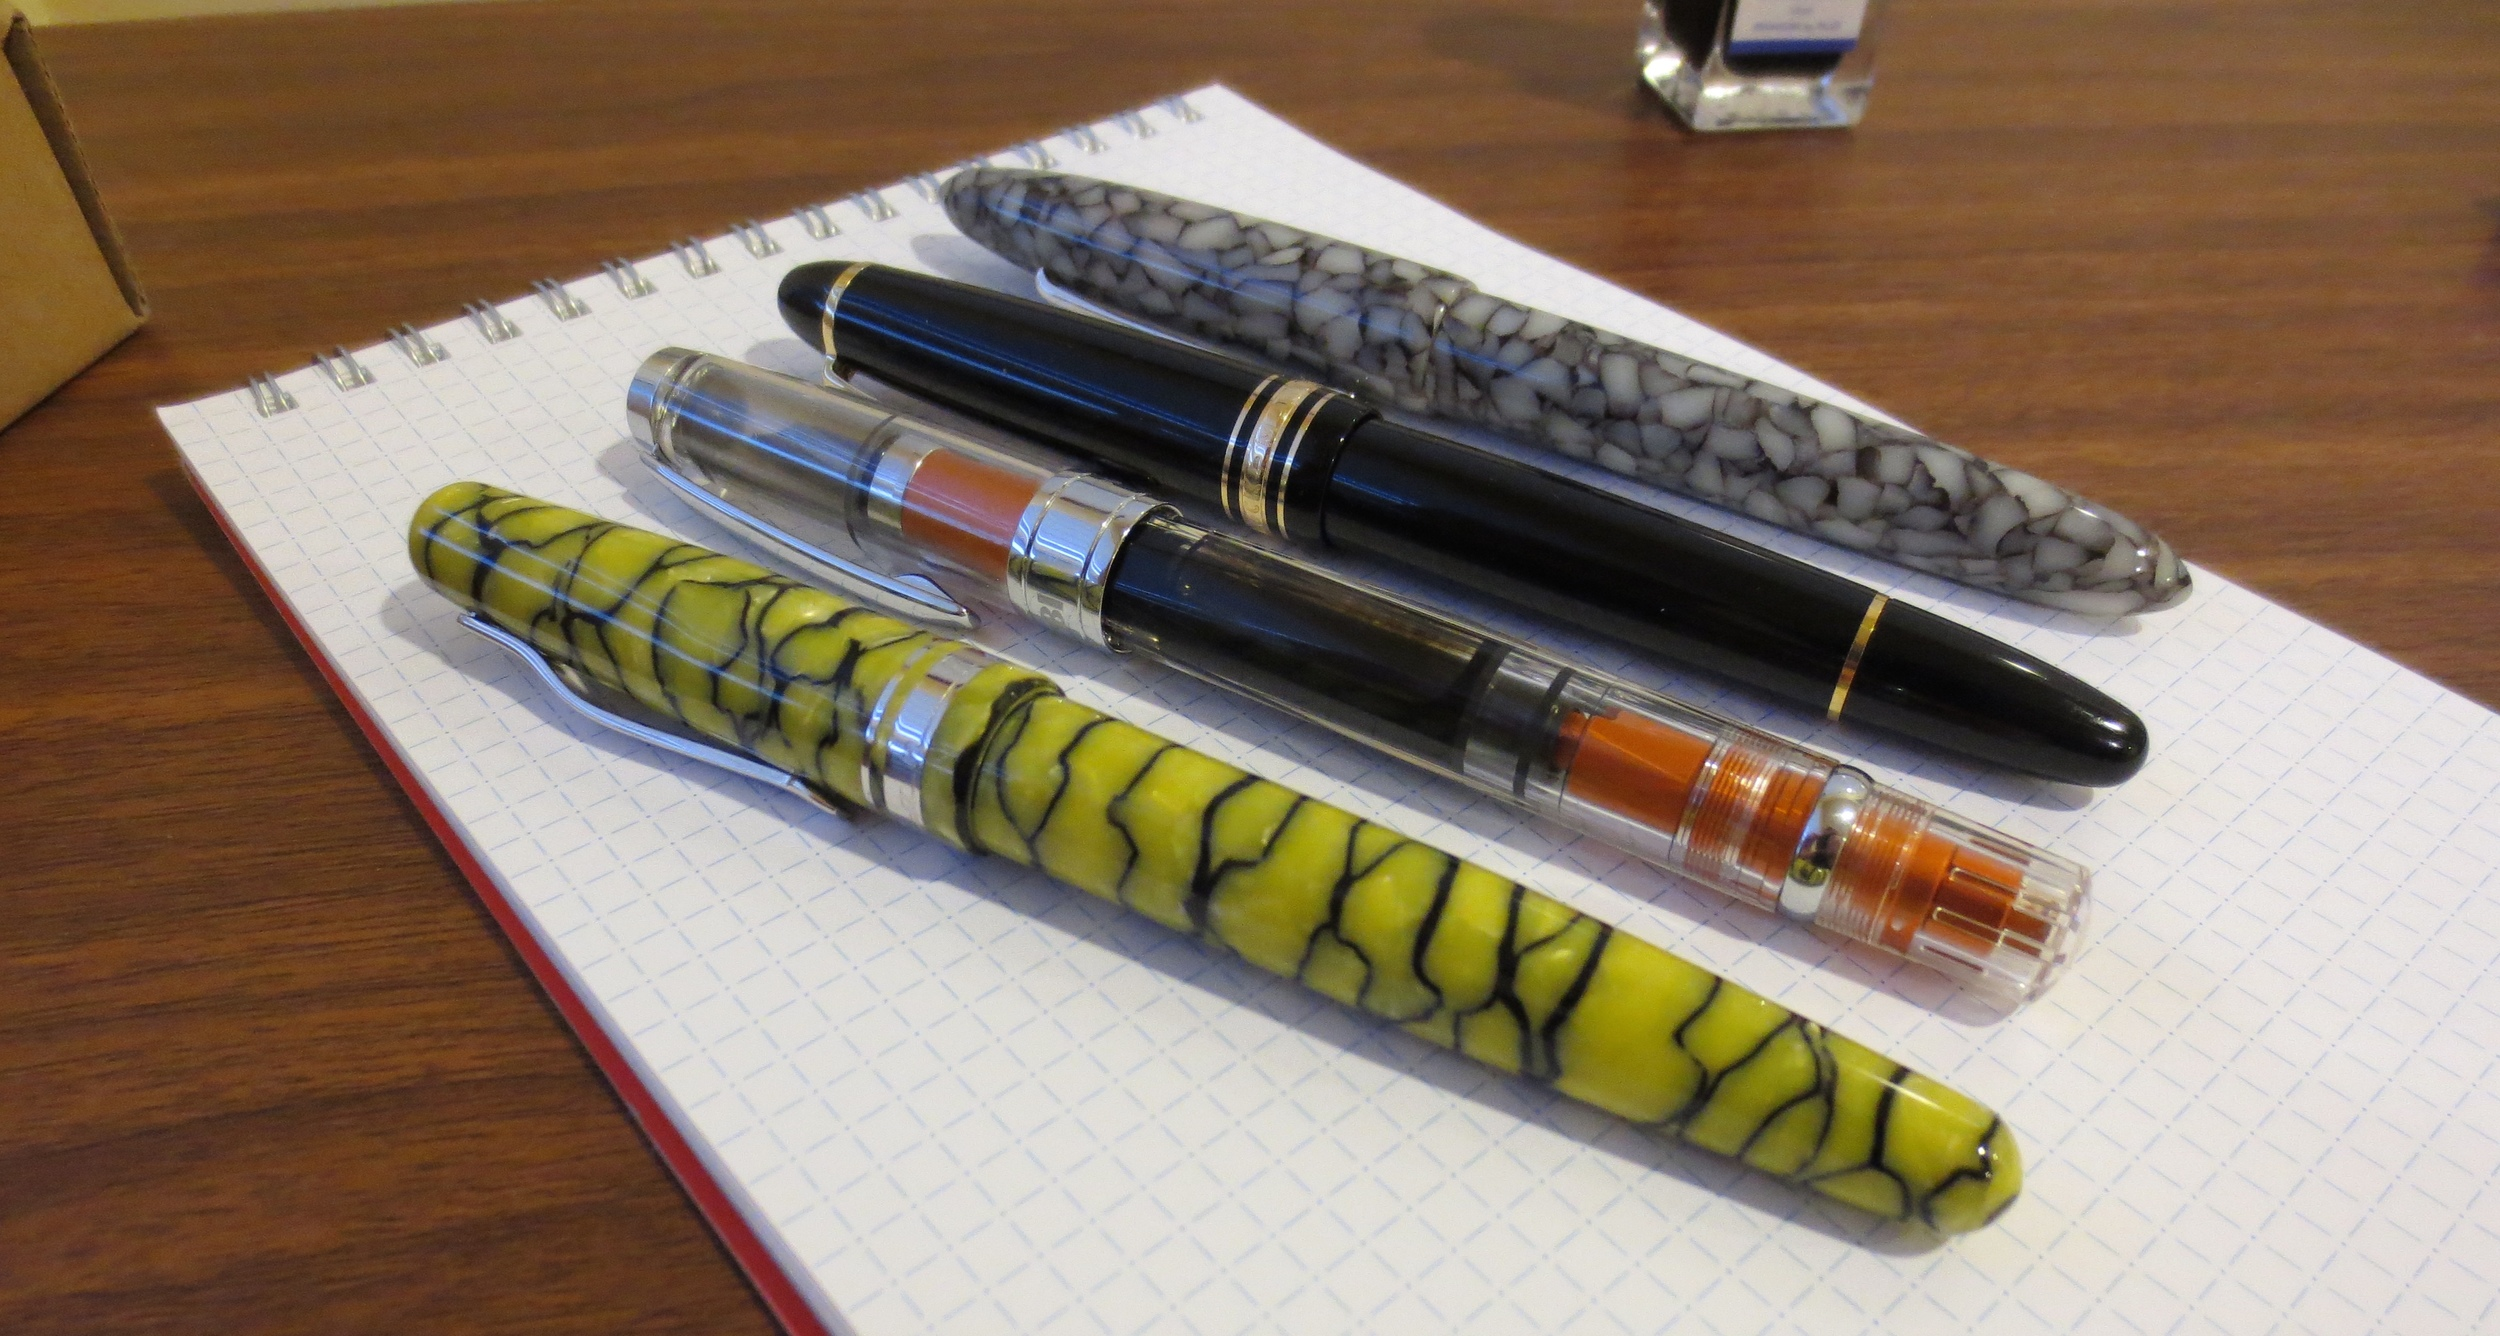 A comparison of the TWSBI 580 agains some similarly sized pens in my collection:  from bottom, the Delta Fusion 82, the TWSBI 580 AL, the Montblanc 146, and the Edison Herald.